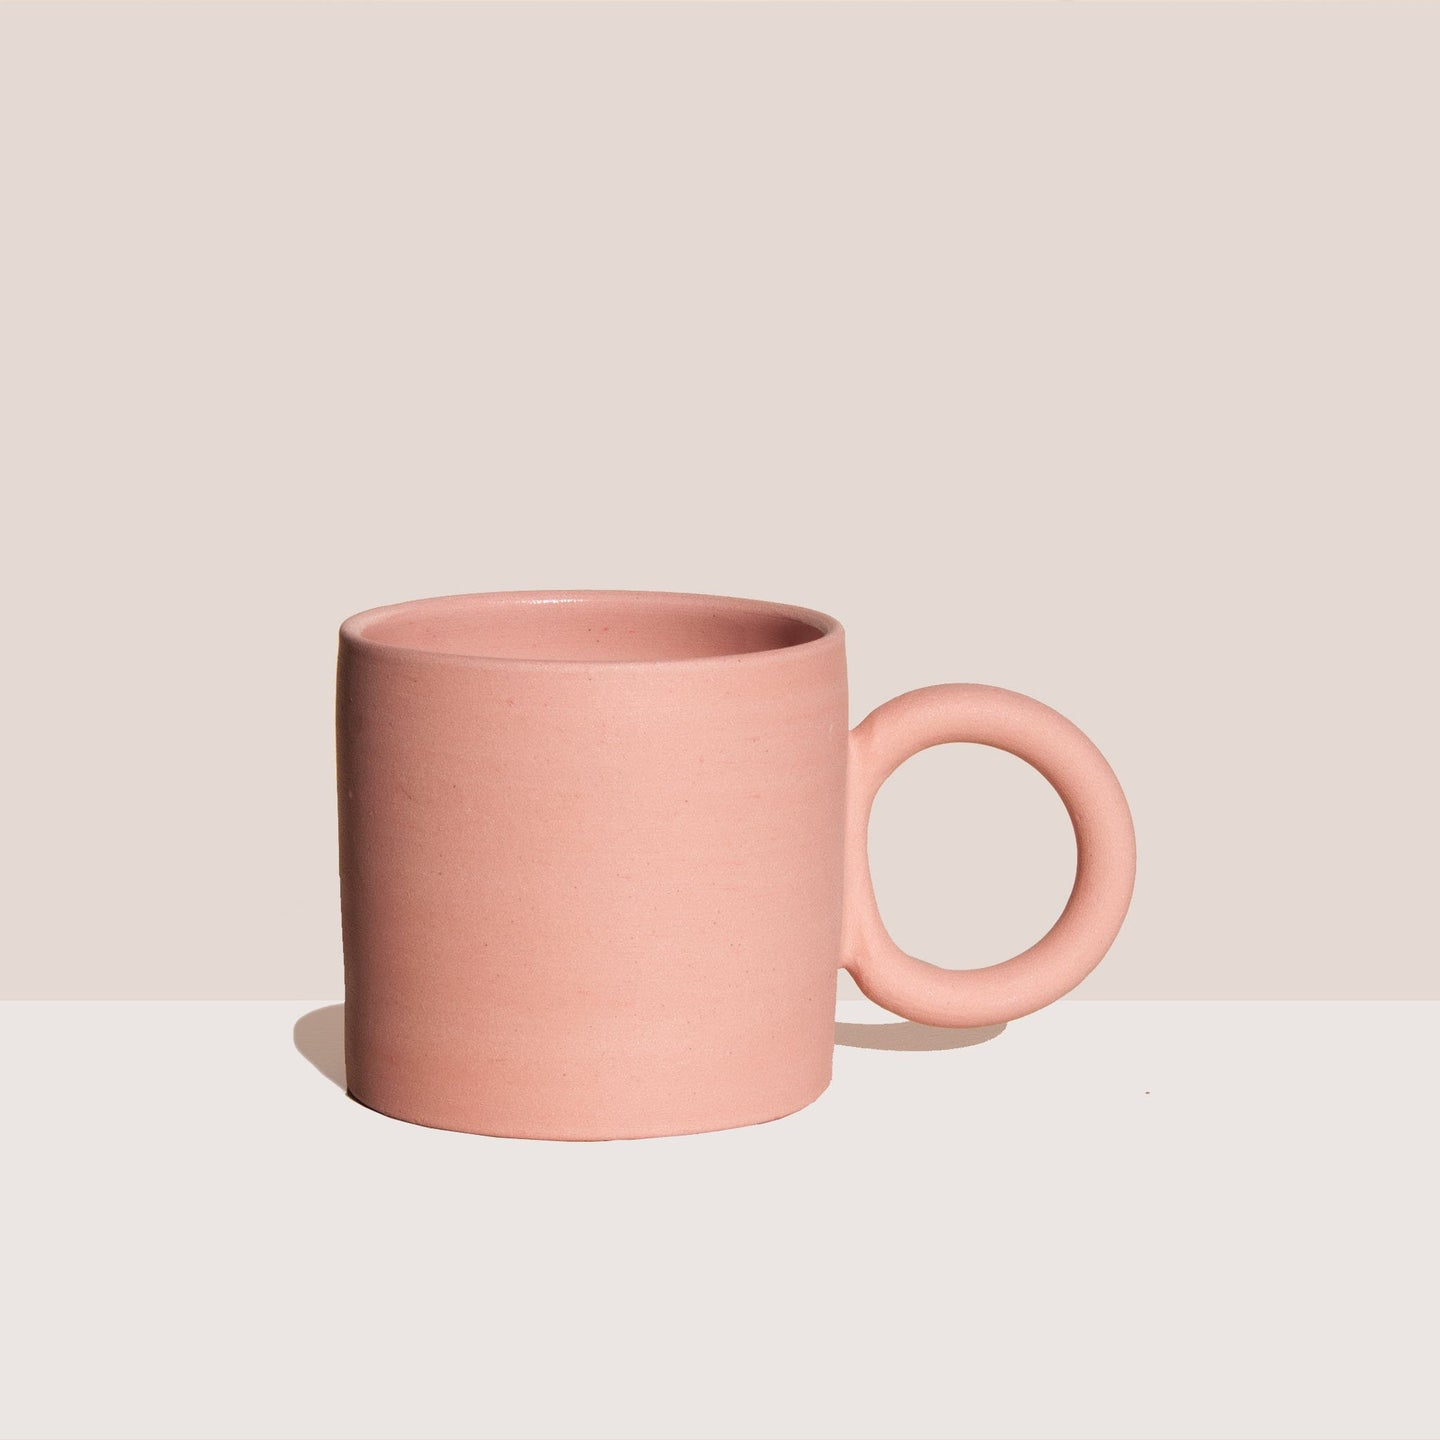 Ekua Ceramics - Circle Mug - Pink, available at LCD.